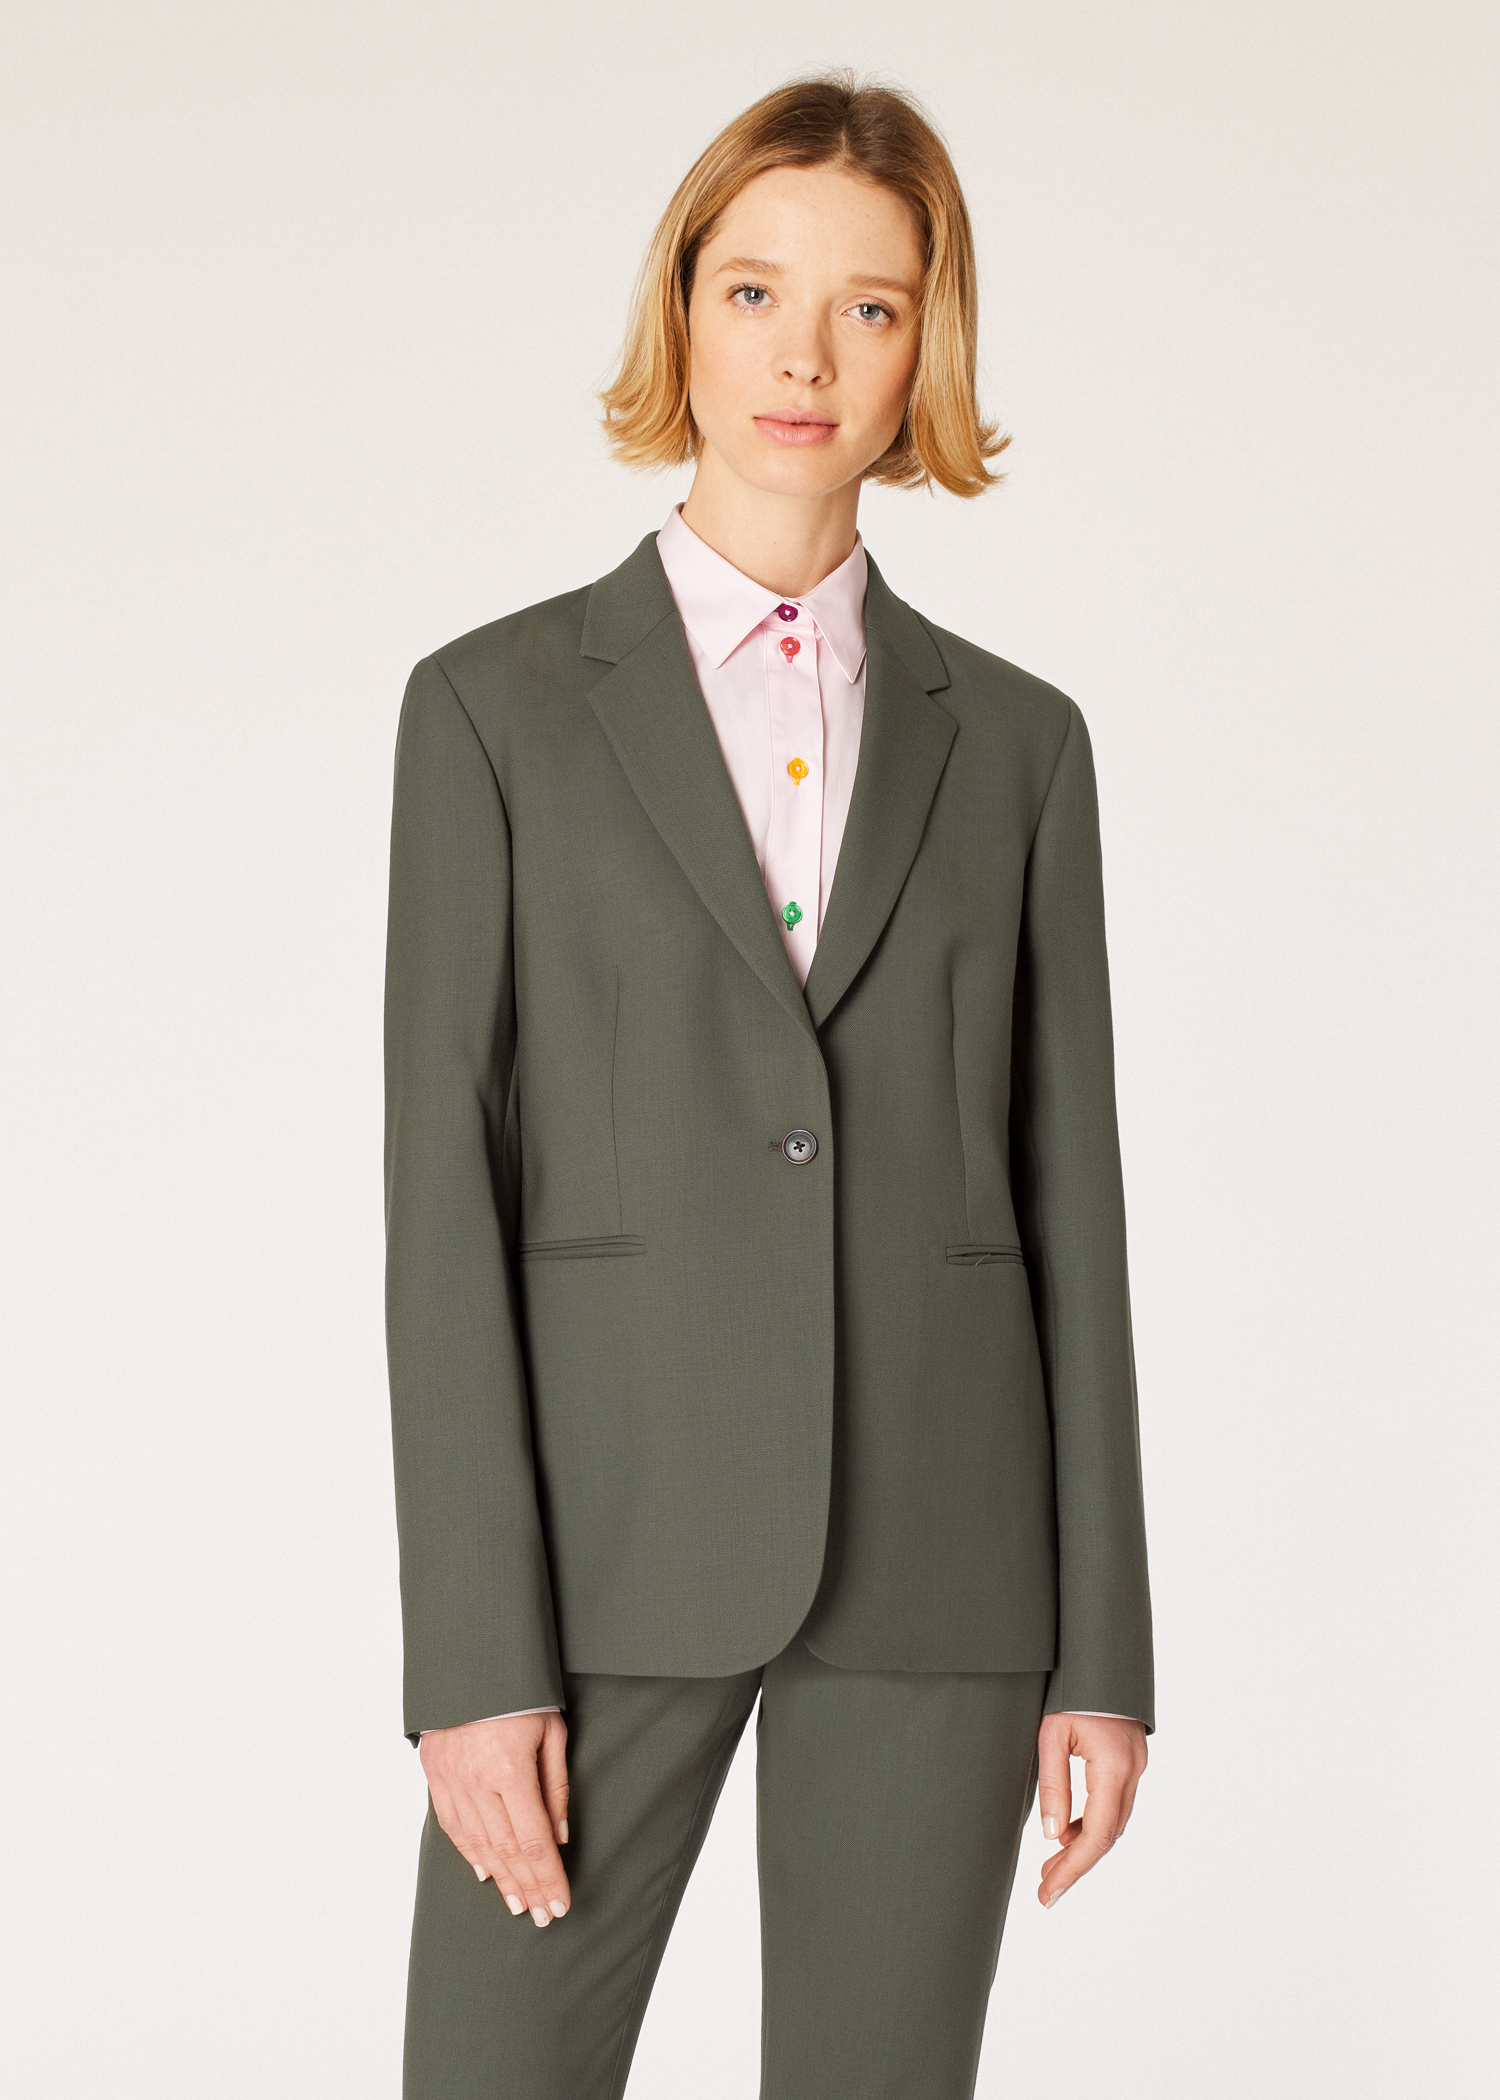 A Suit To Travel In Paul Smith Women S Olive Green One Button Wool